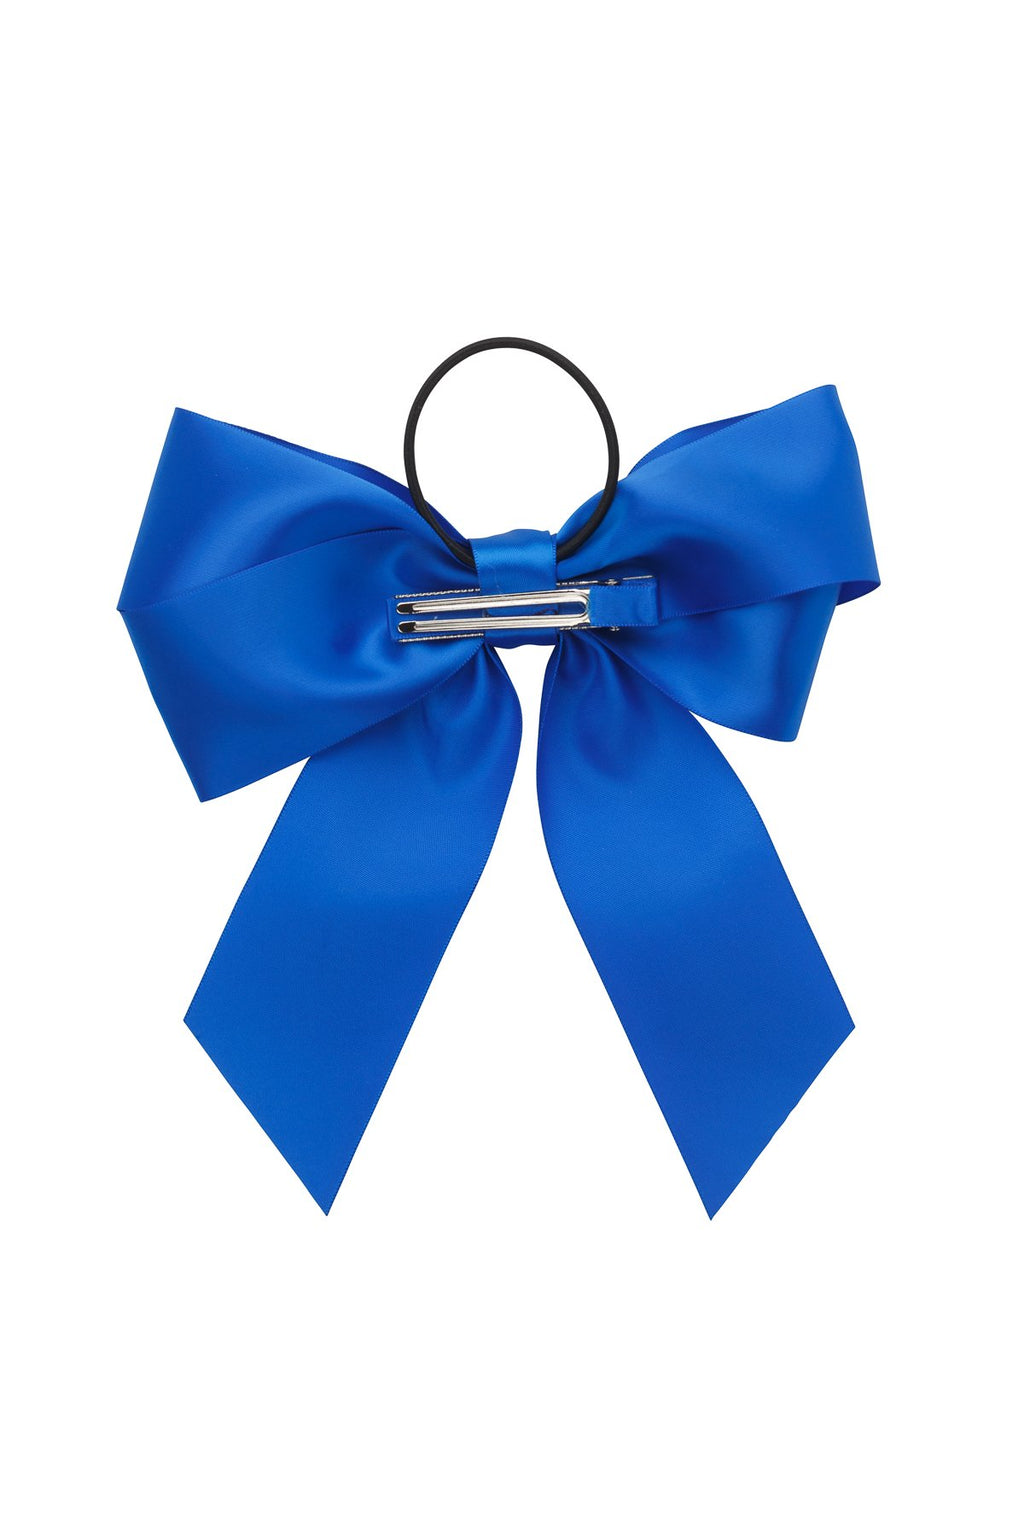 Oversized Bow Pony/Clip - Electric Blue - PROJECT 6, modest fashion